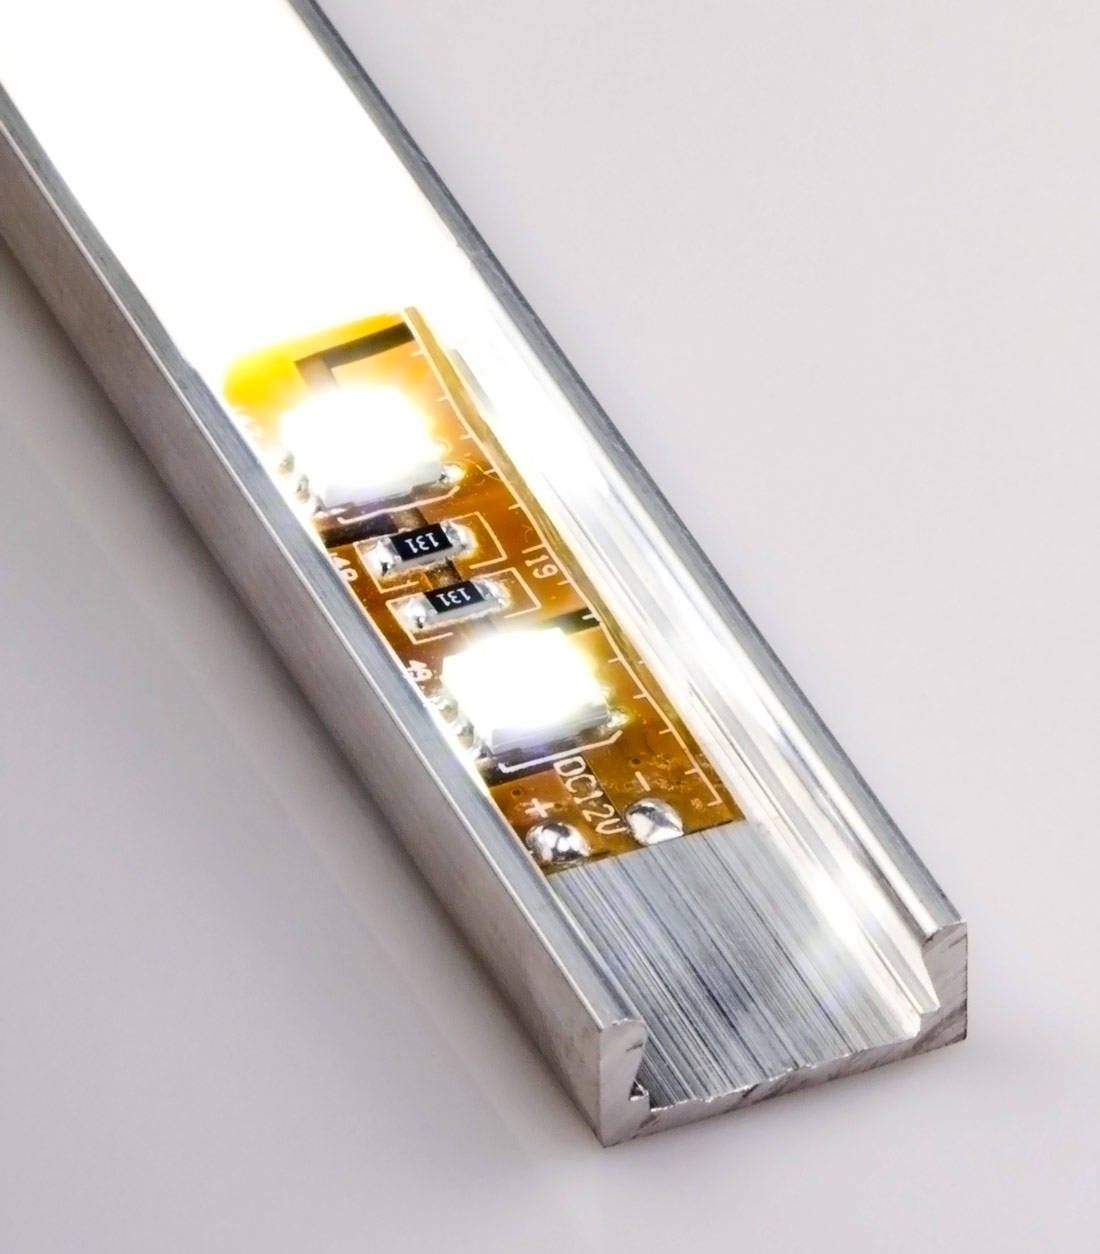 Low Profile Surface Mount Led Housing For Strip Lights Wiring Channel Aluminum Micro Alu Series With Illuminated Flexible Light Not Included And Standard Frosted Lens